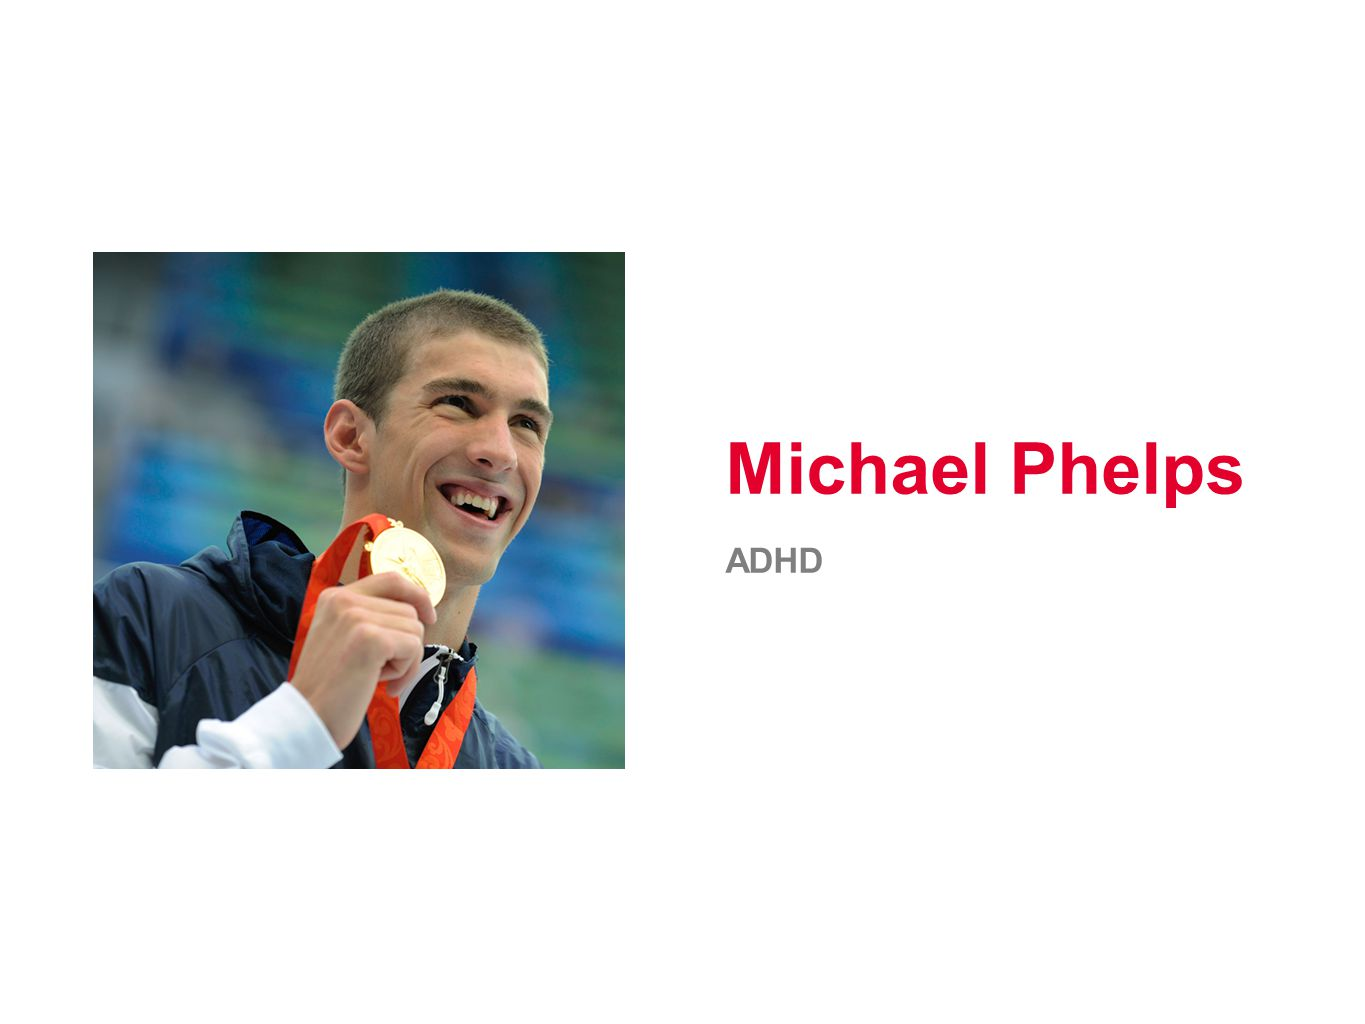 Michael Phelps ADHD